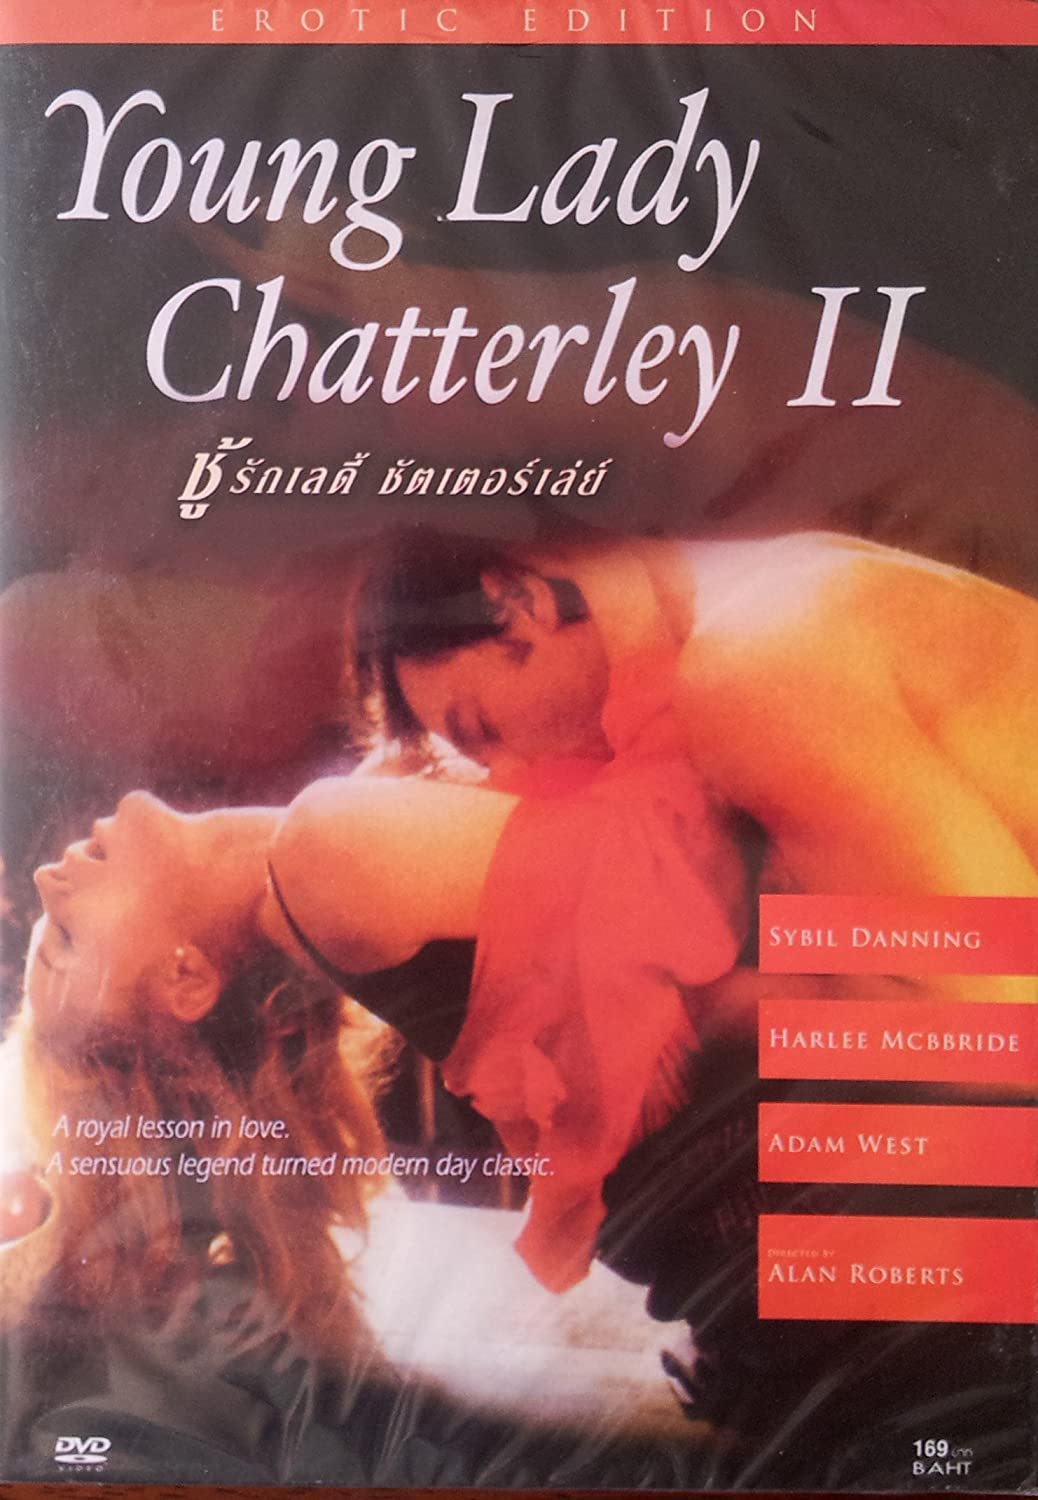 lady chatterley lover 2 parte Kochanek lady chatterley caly film 1:09:37 lady chatterley's lover 2:13:50 lady chatterley's lover-1 parte 1:42:20 kochanek lady chatterley na kanale filmbox.